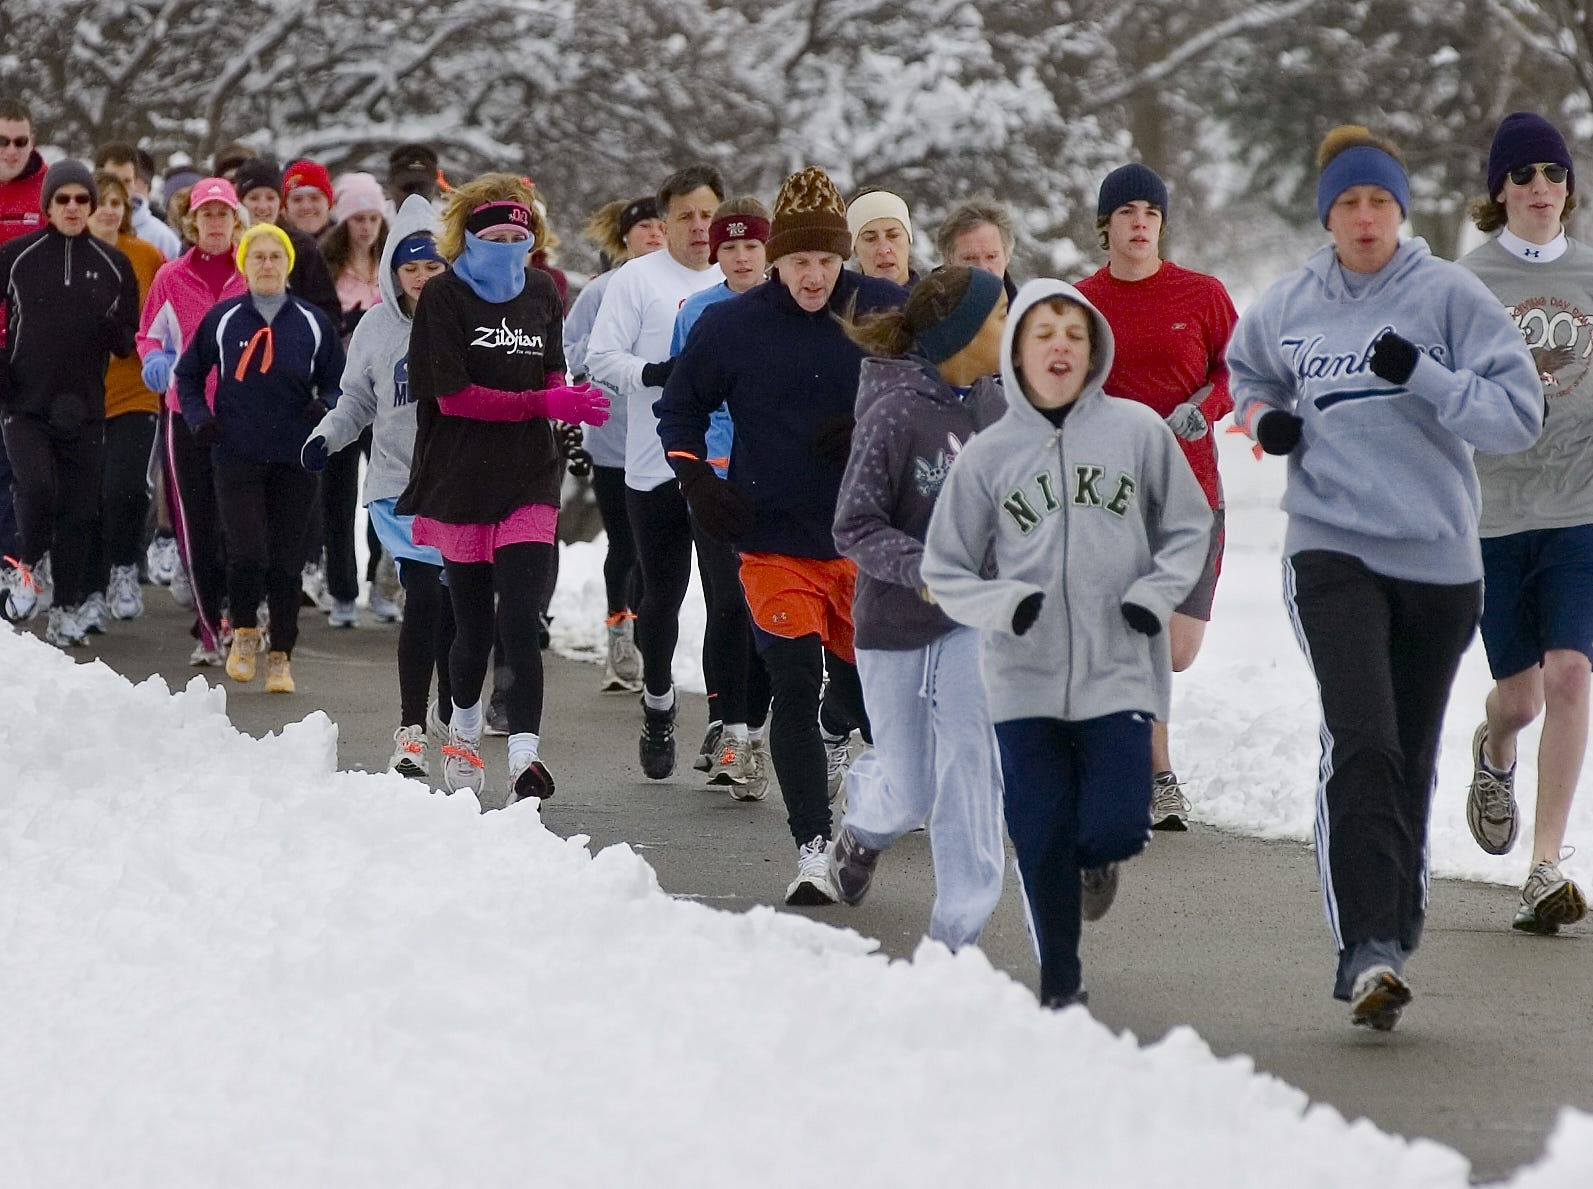 More than 150 runners participated in the annual YMCA 5K Resolution Run in 2007, held on New Year's Eve at Otsiningo Park.